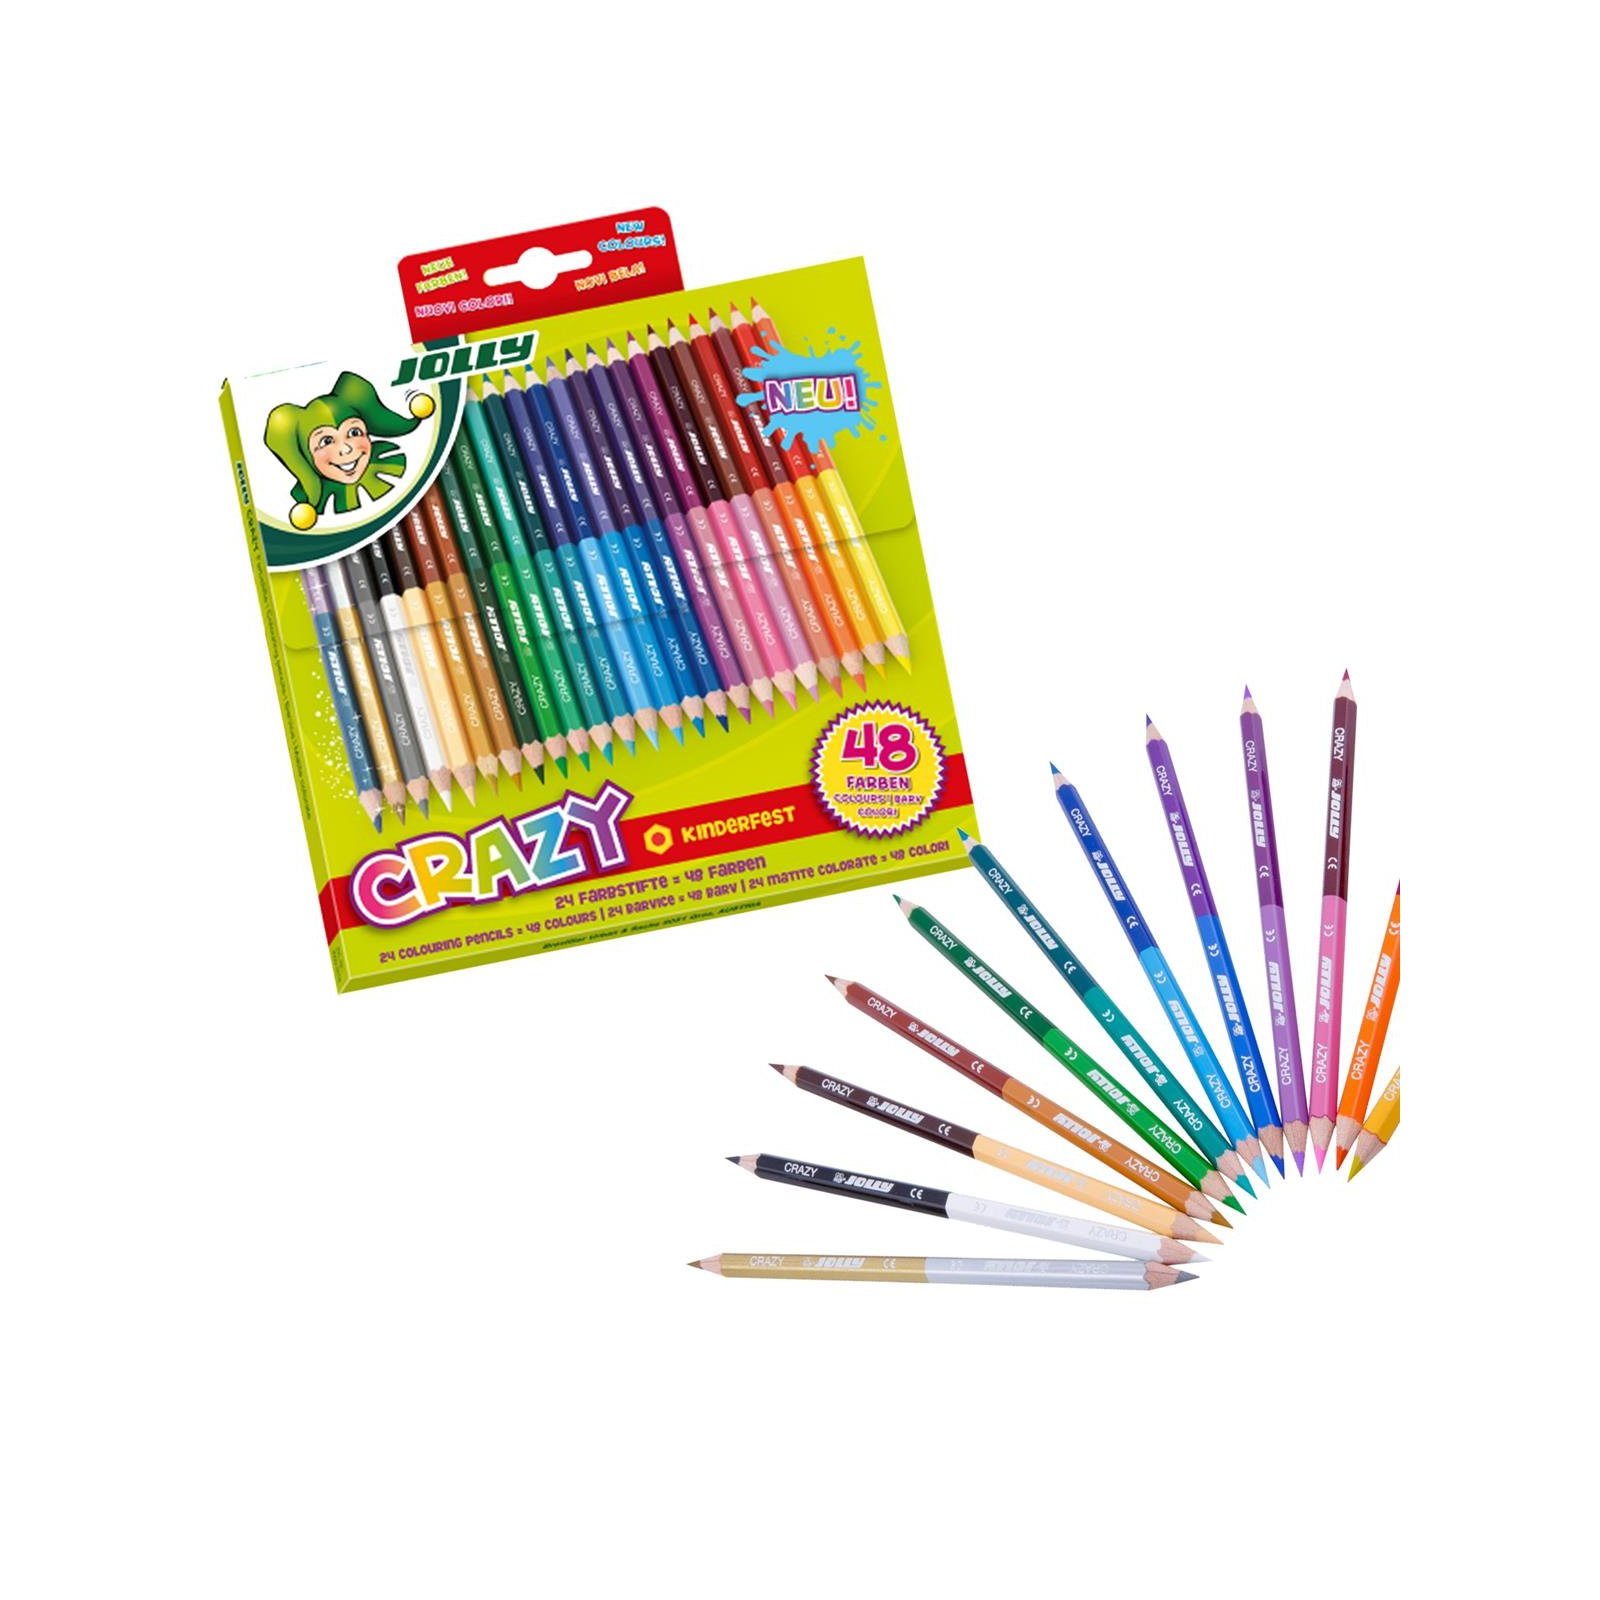 JOLLY Buntstifte CRAZY 24er Set = 48 Farben